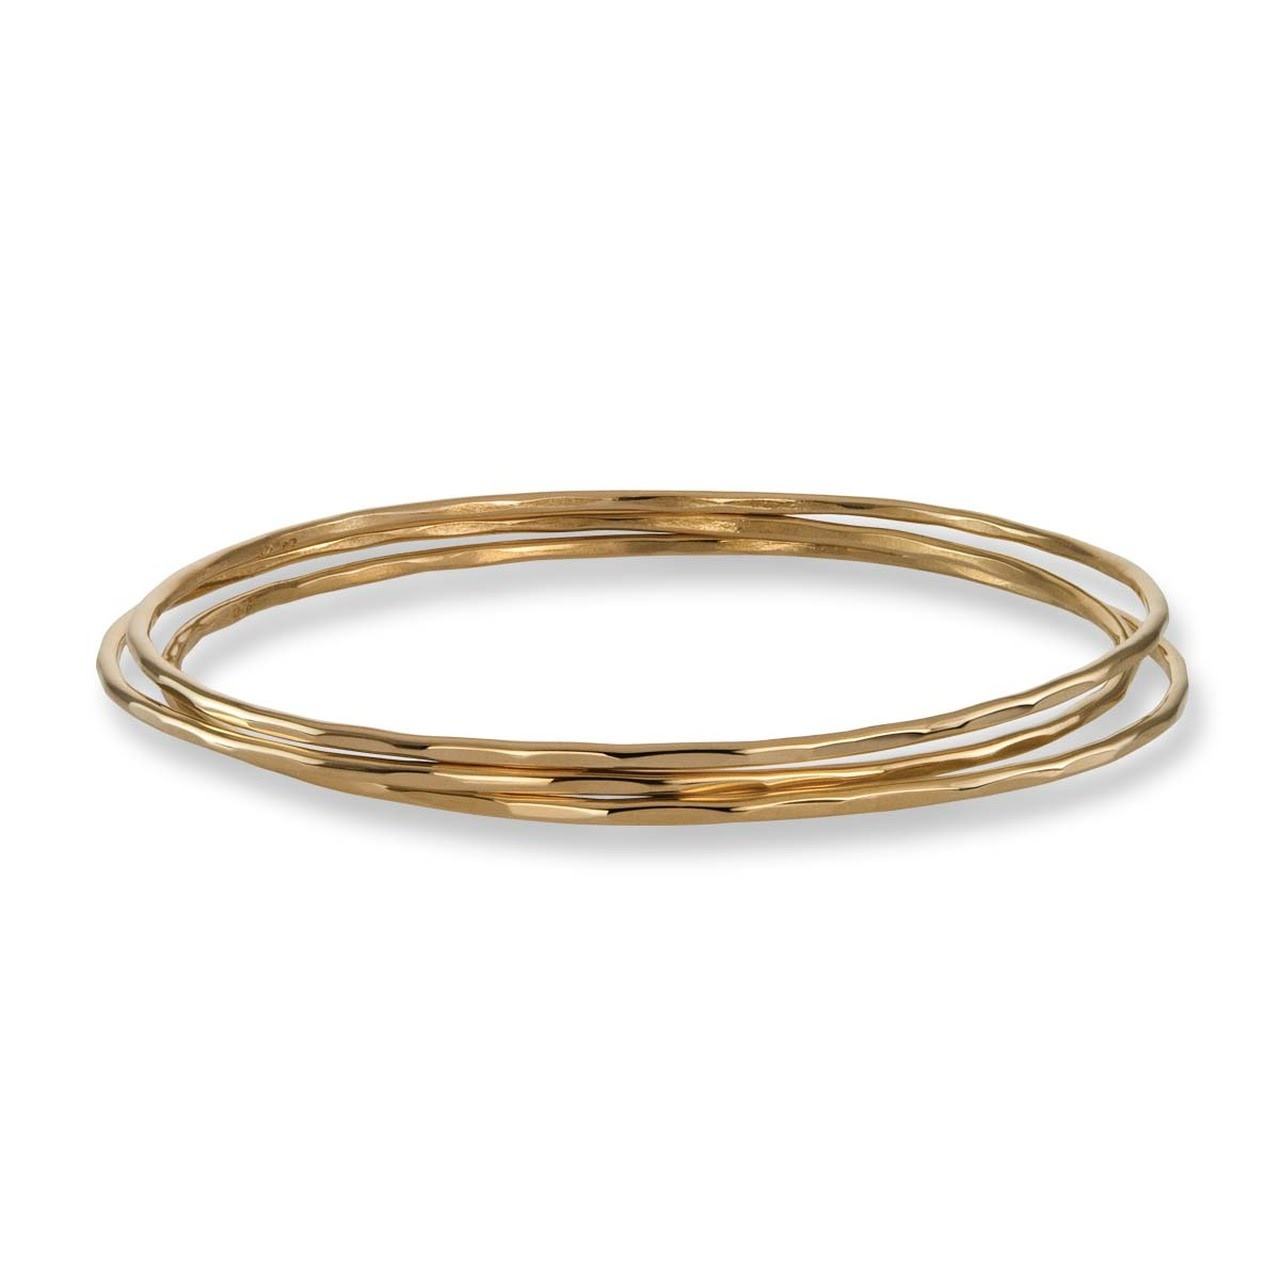 Difference Between Bangles and Bracelets